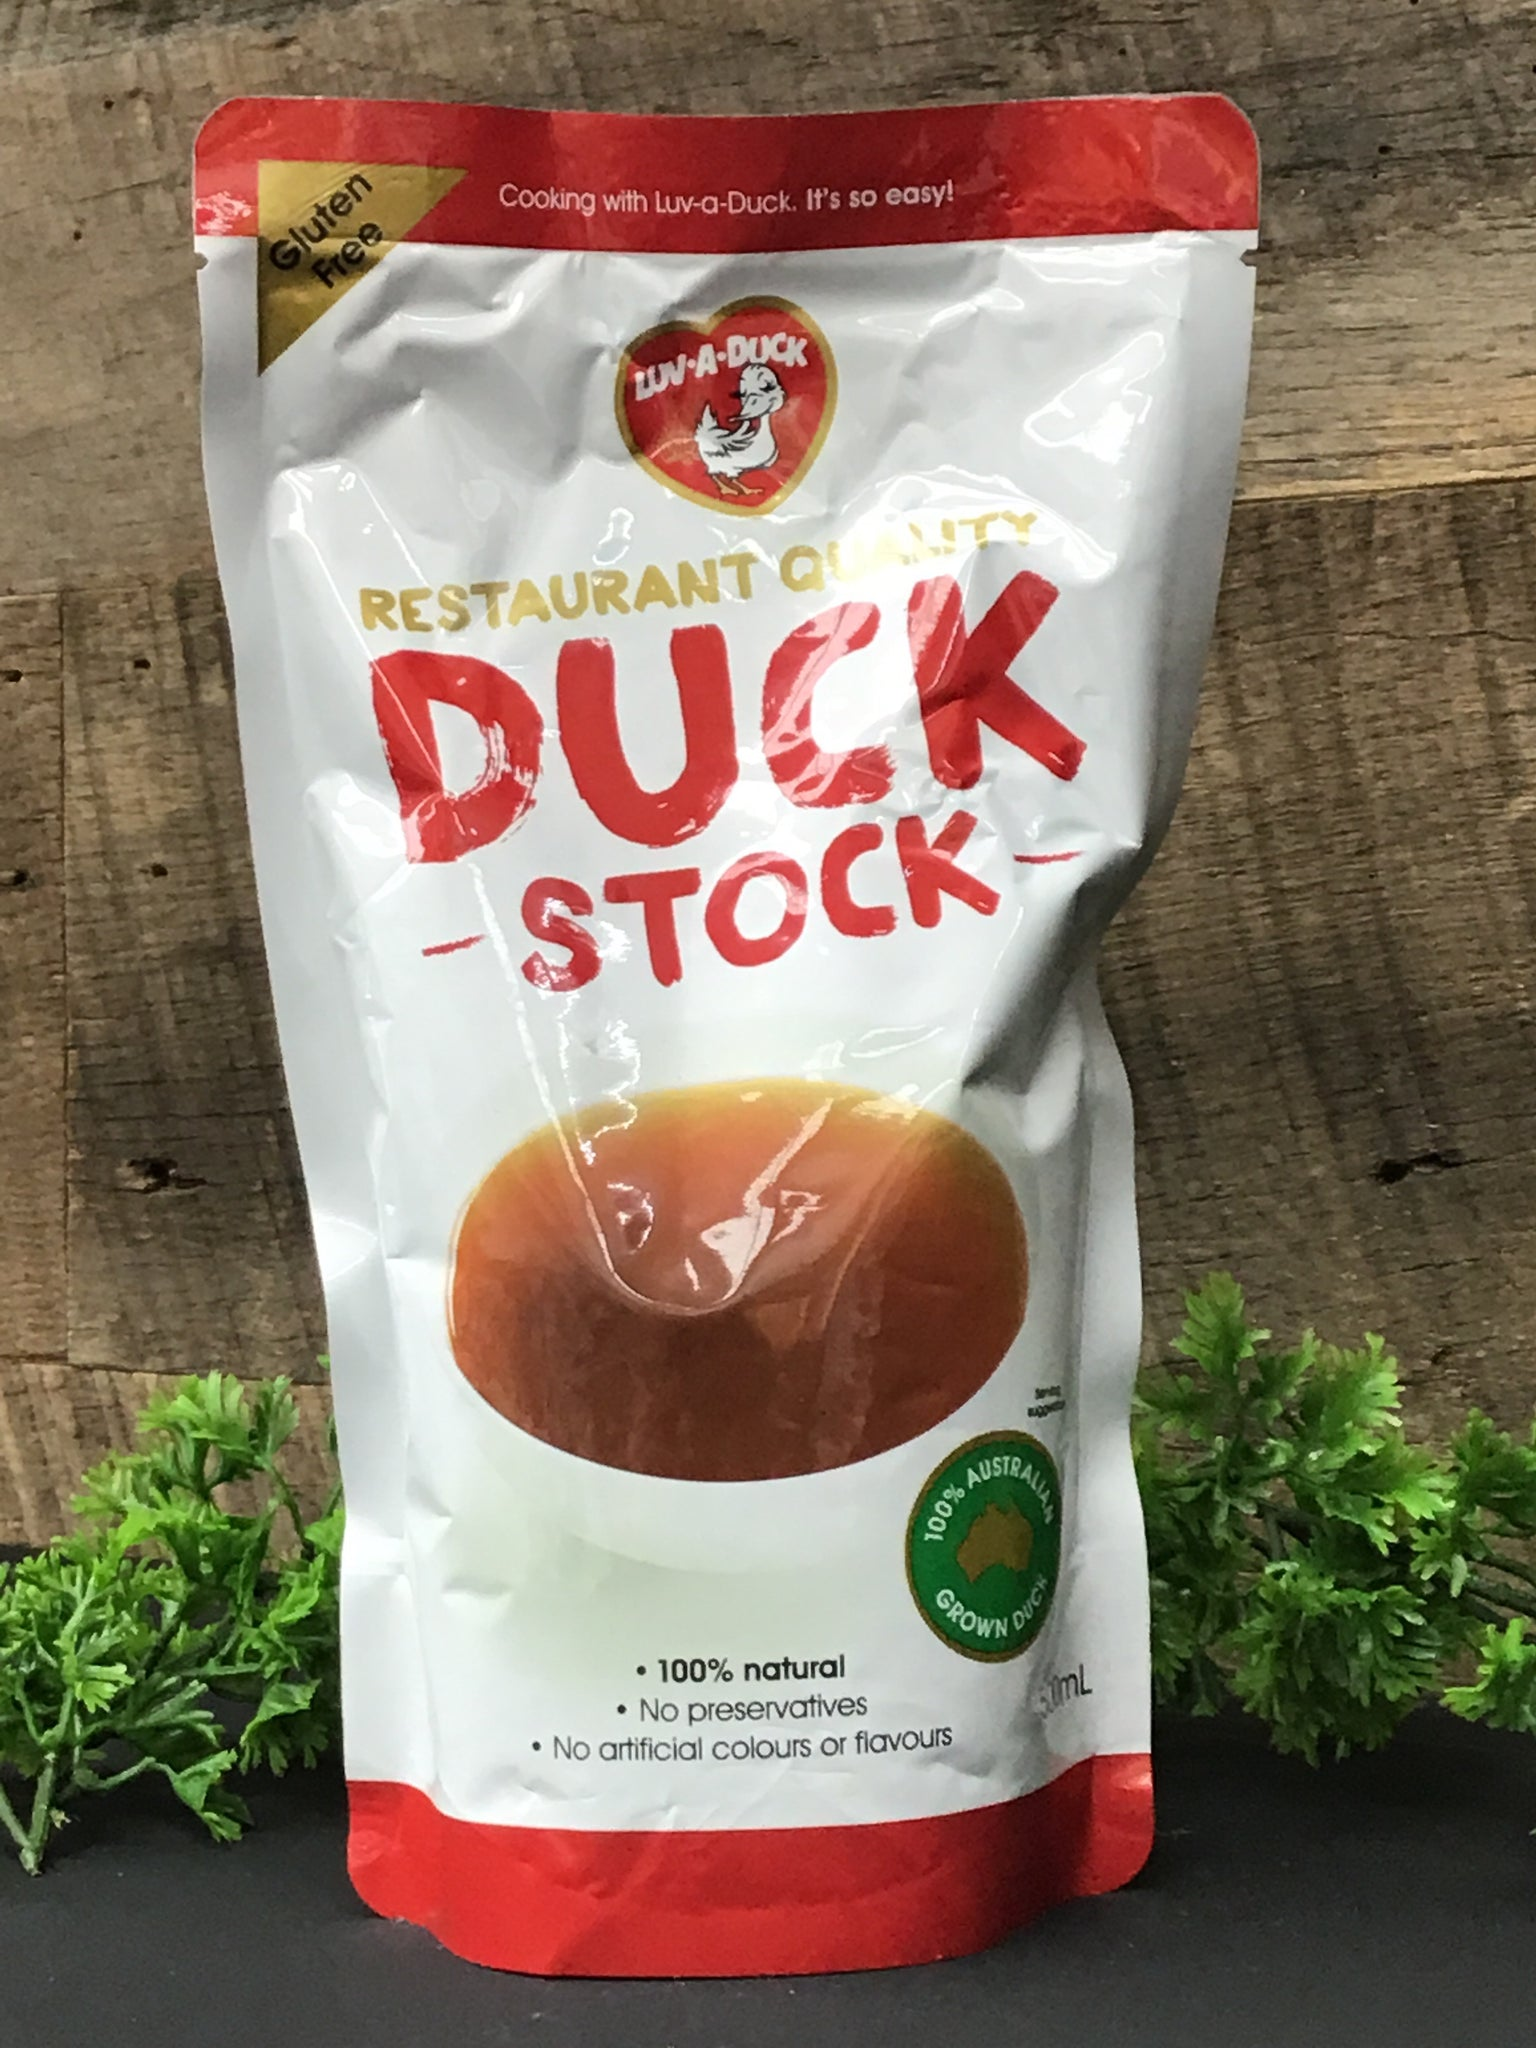 Luv-a-duck Duck Stock 500ml